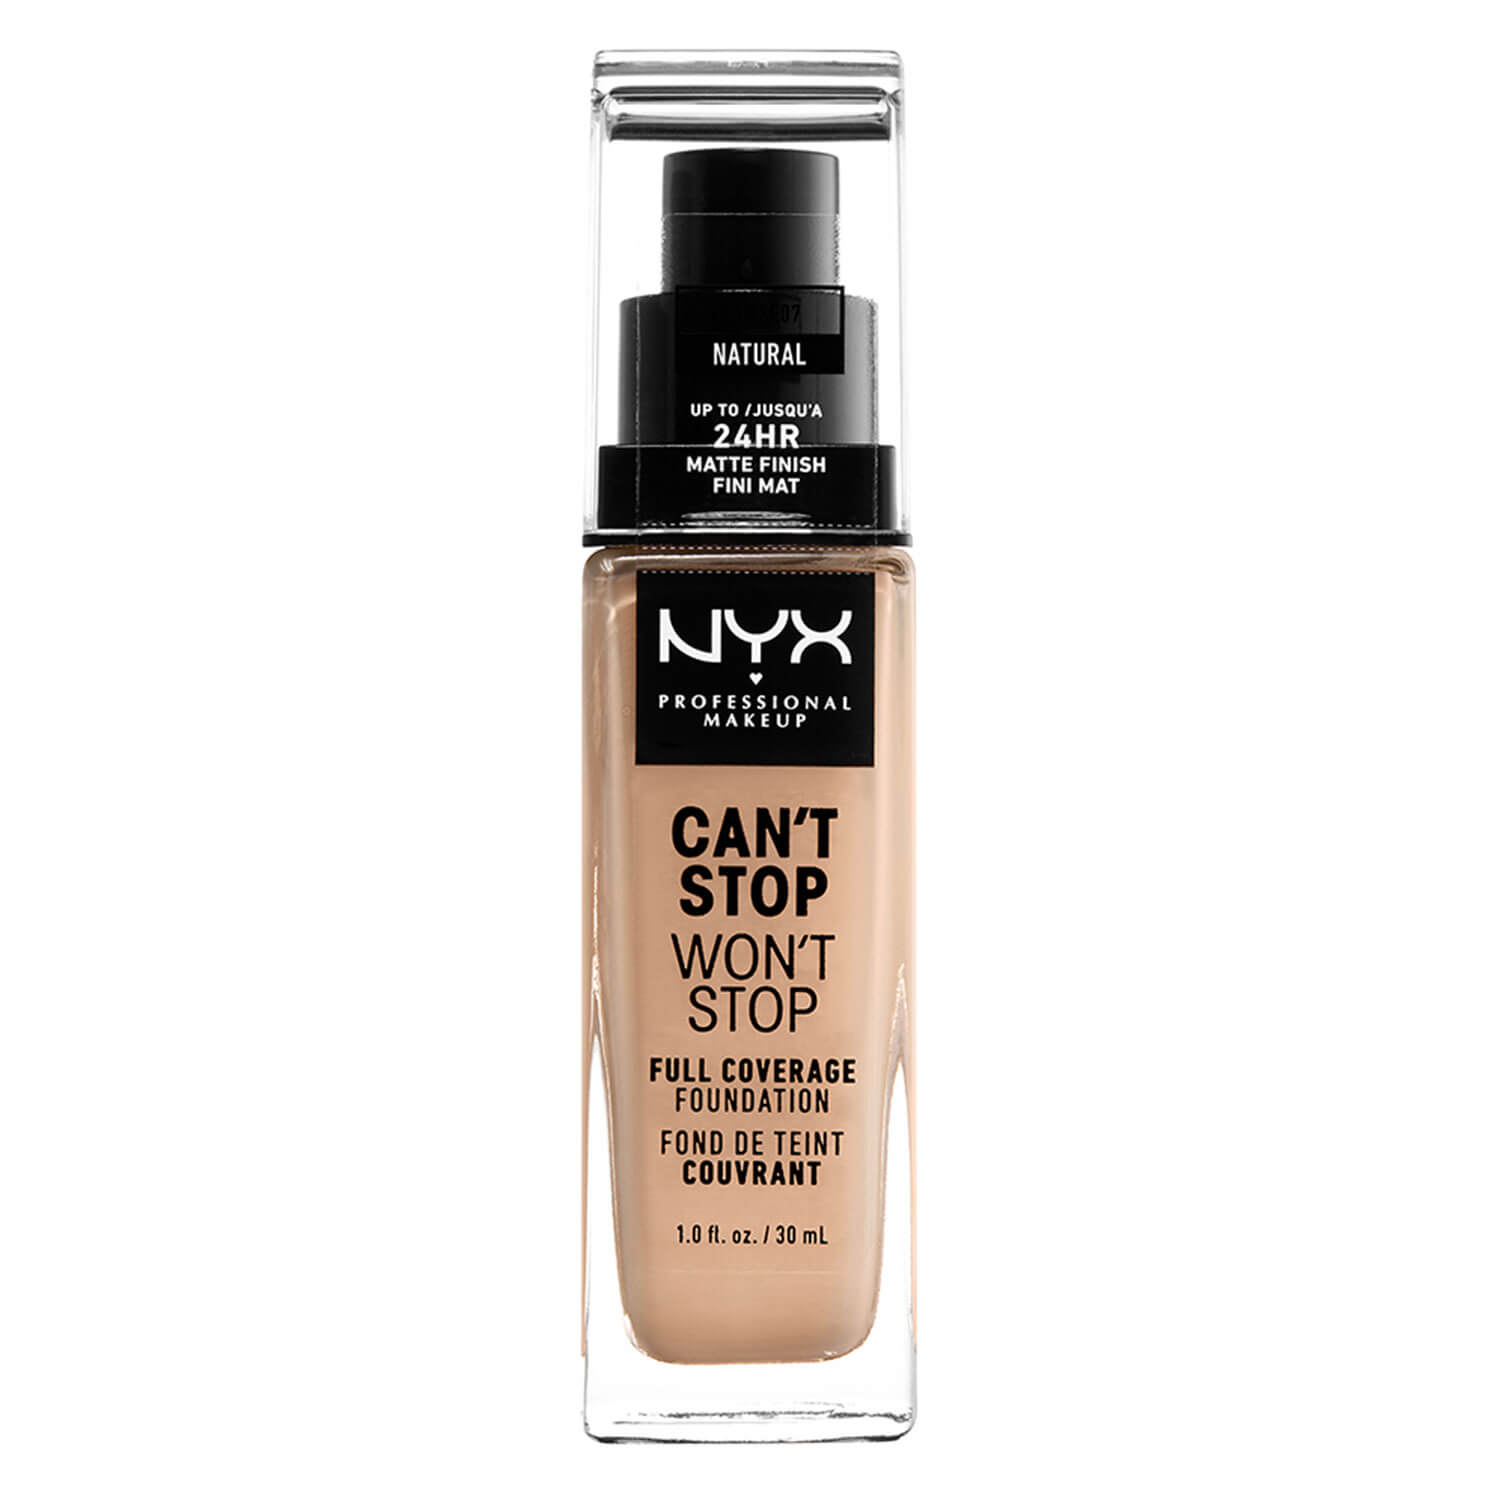 Can't Stop Won't Stop - Full Coverage Foundation Natural